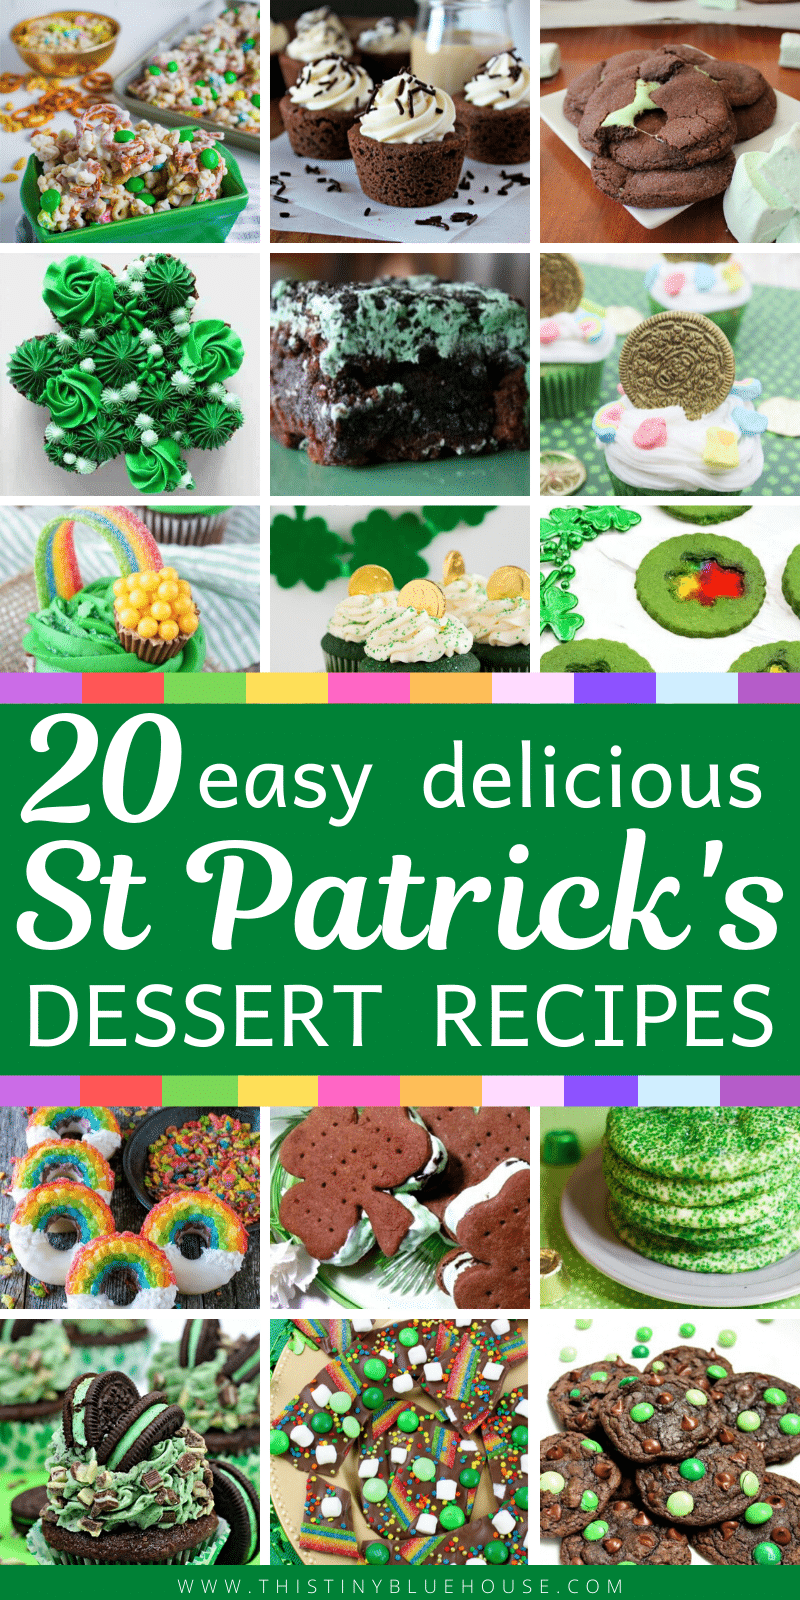 Make St Patrick's Day extra sweet with these 20 easy and delicious St Paddy's Dessert Recipes. From Leprechaun bark to cupcakes there's a sweet treat for everyone! #stpatricksdaydesserts #stpatricksdaytreats #stpatricksdayrecipes #stpatricksdaydessertrecipes #stpatricksdaycupcakes #stpatricksdaycookies #stpatricksdaysweettreats